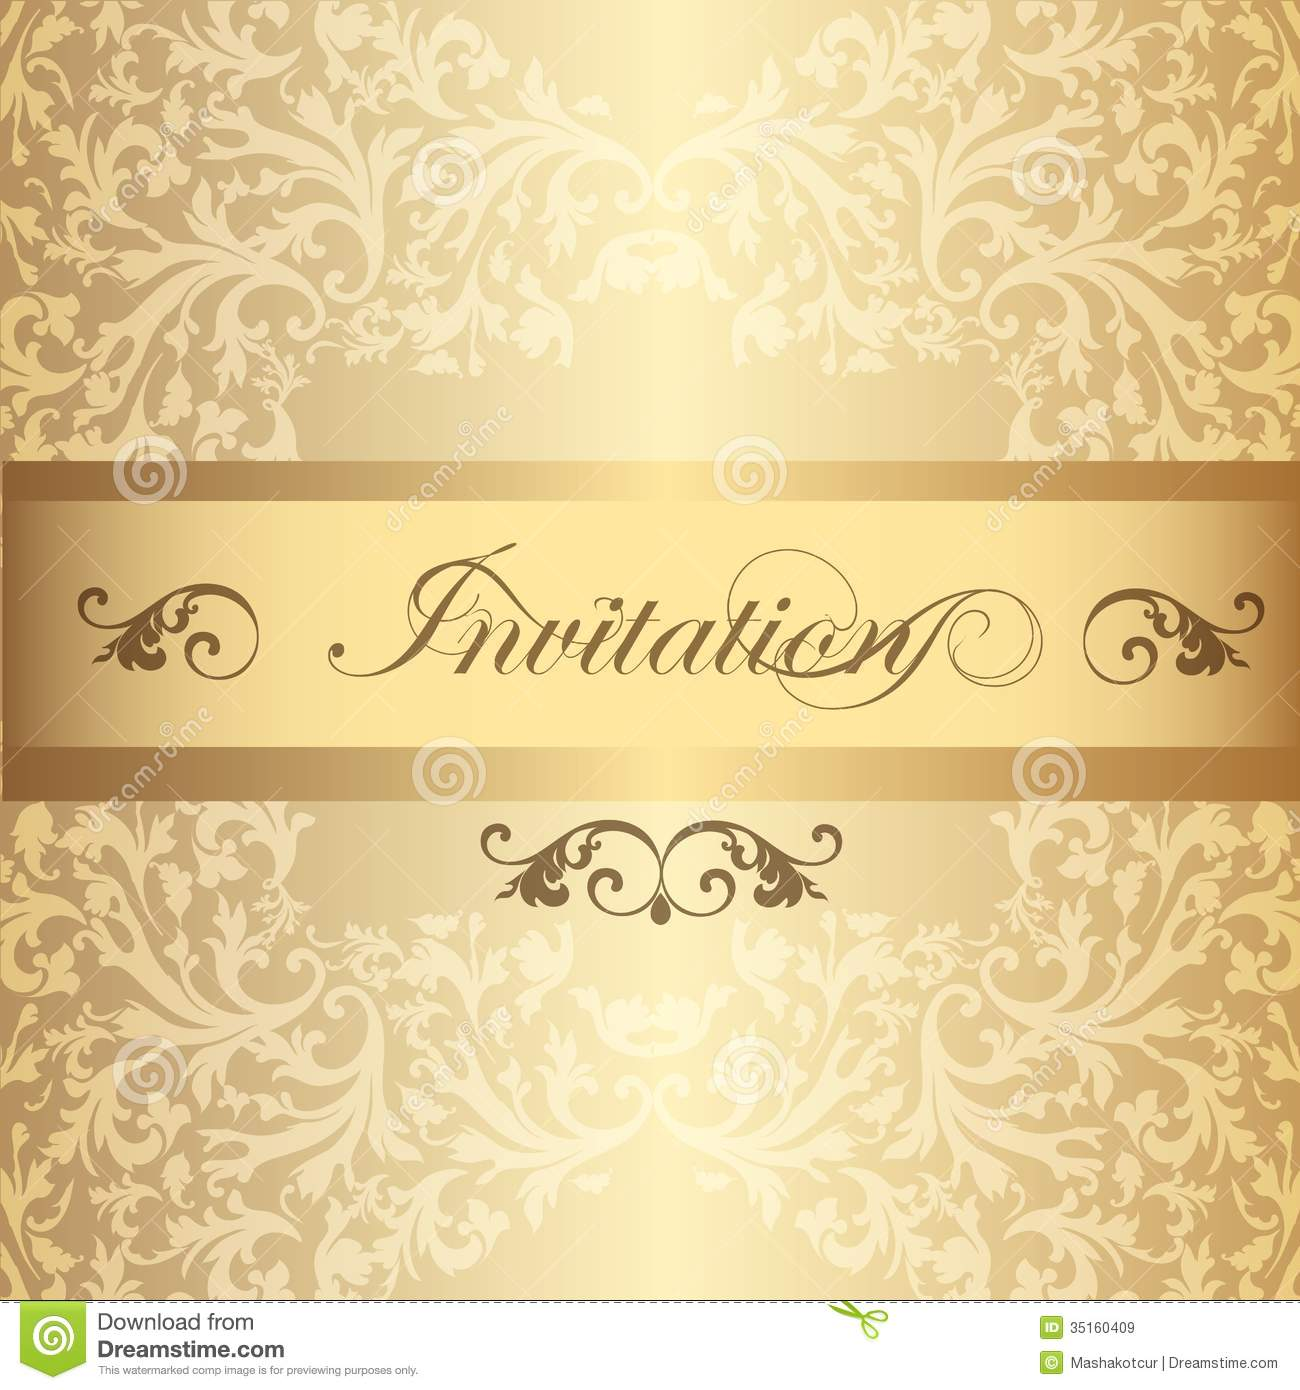 Wedding Invitation Card In Luxury Vintage Style Royalty Free – Vintage Invitation Cards